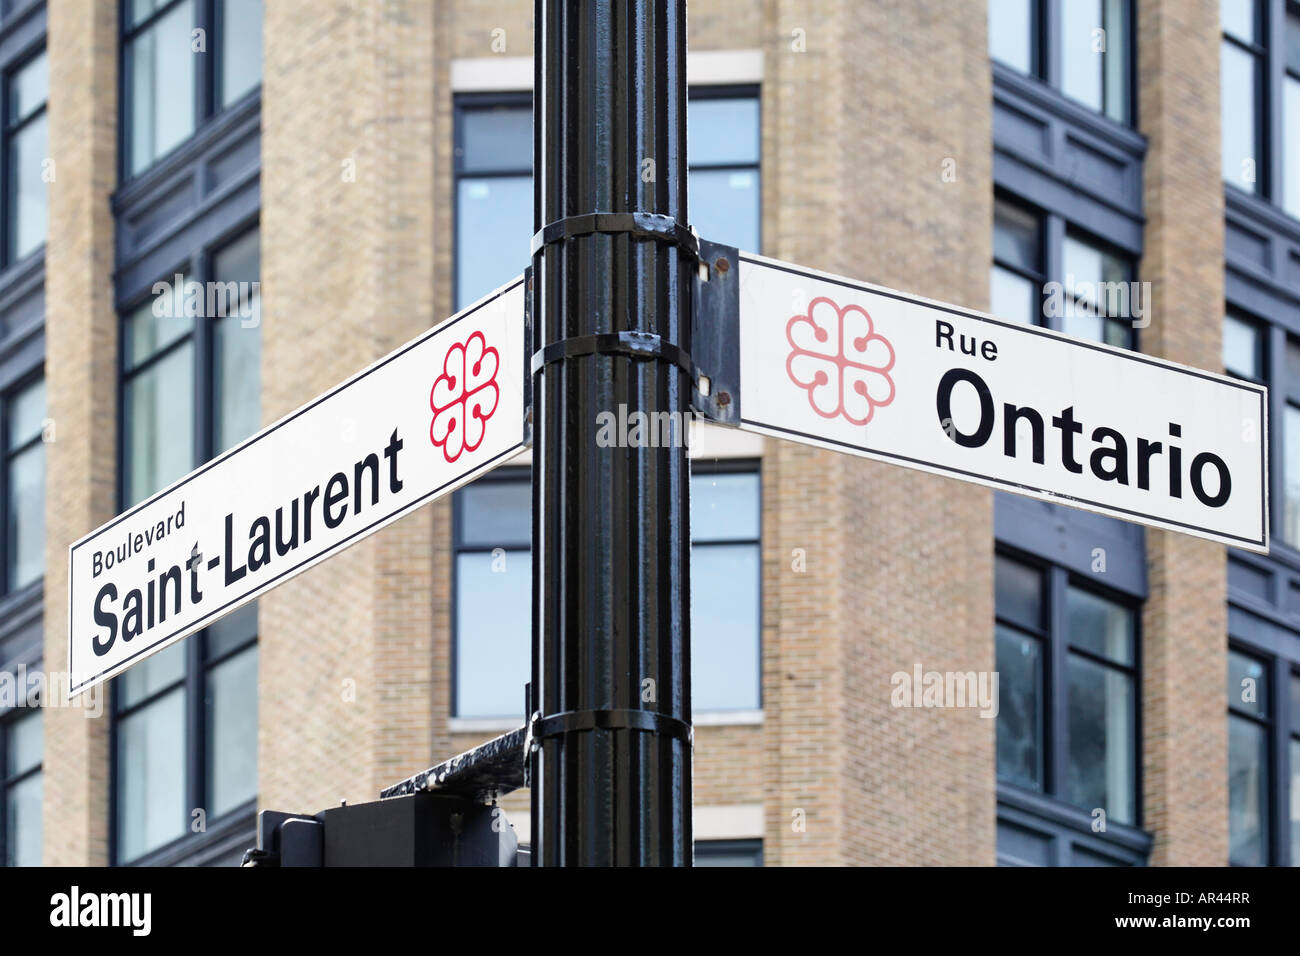 Street sign of Boulevard Saint Laurent and Rue Ontario in Montreal Montreal Quebec Canada - Stock Image